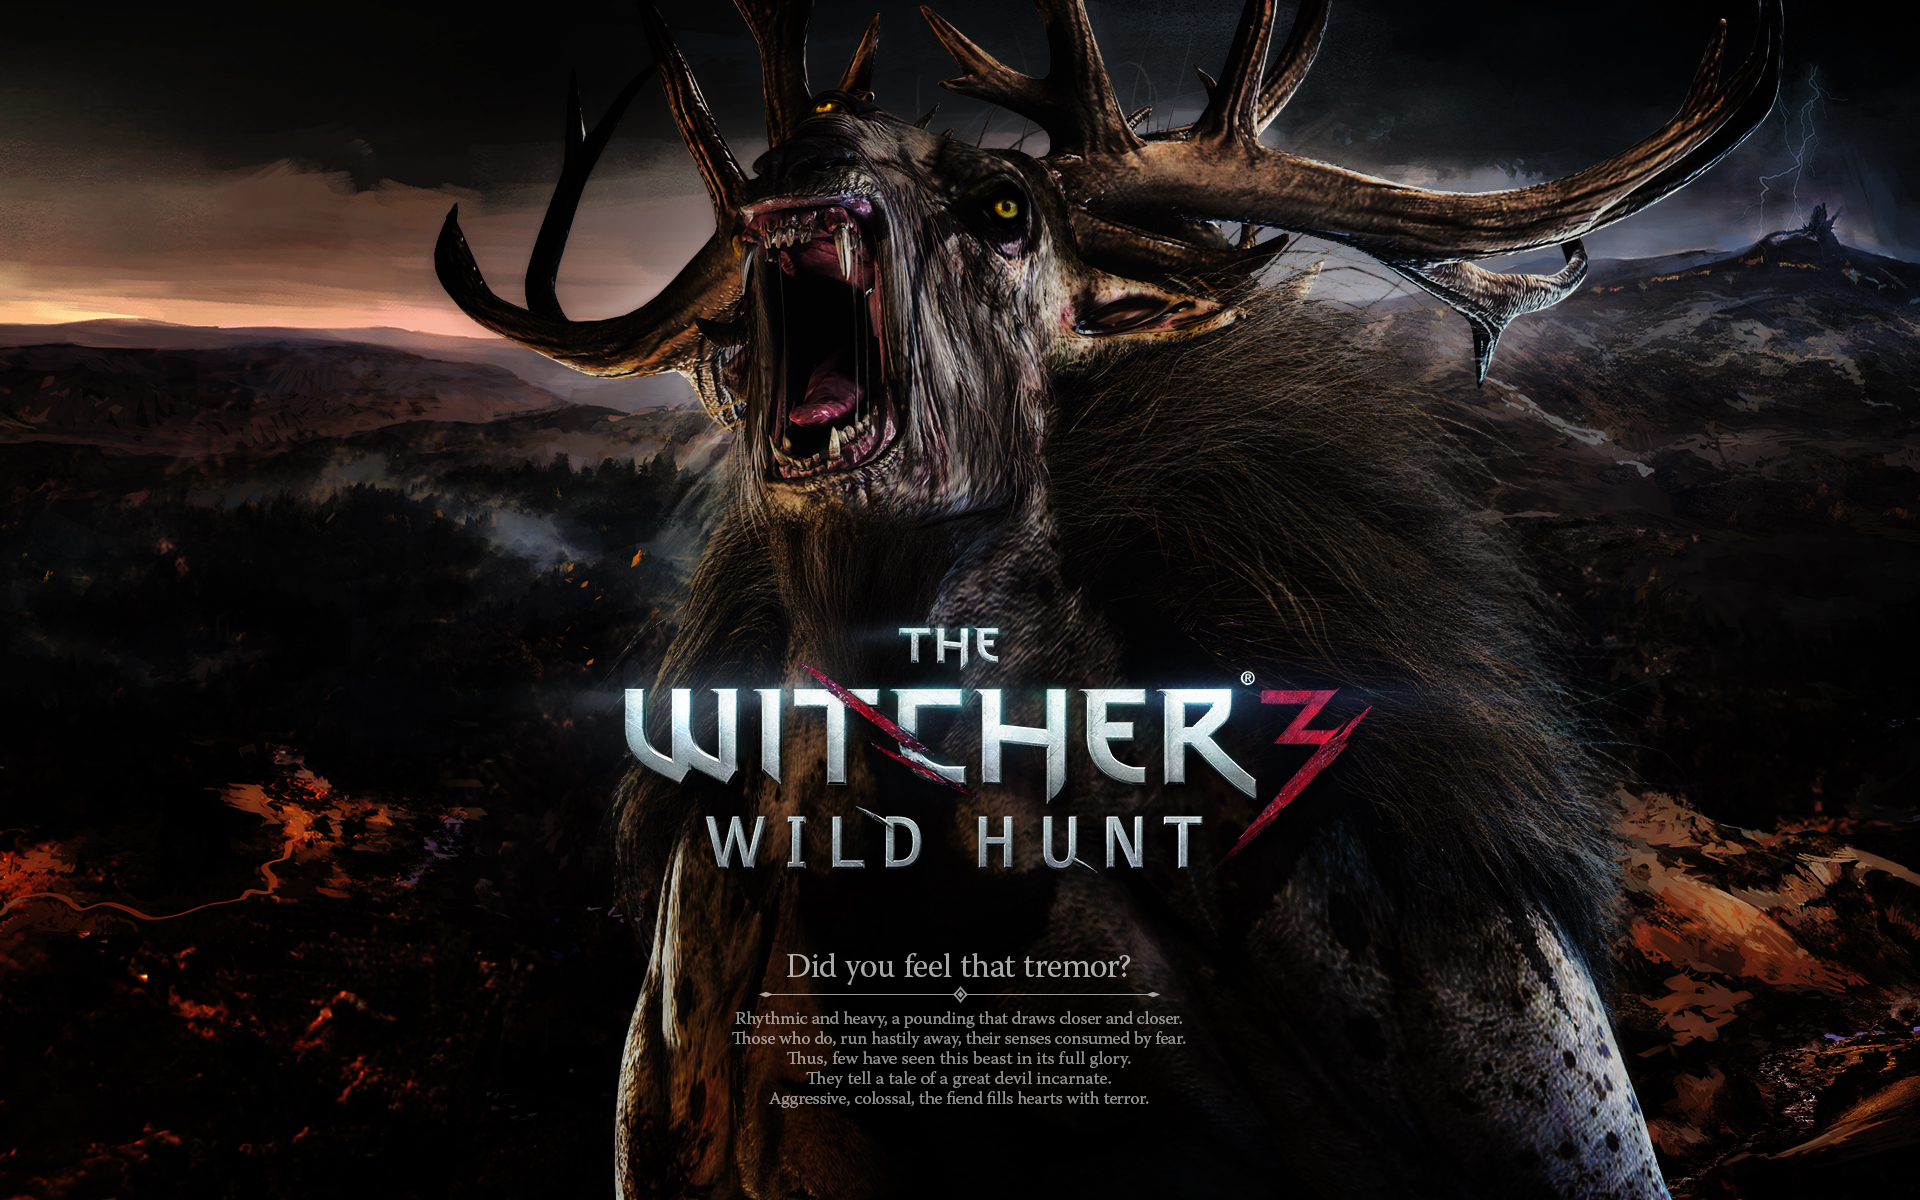 The Witcher 3: Wild Hunt HD Wallpaper | Background Image